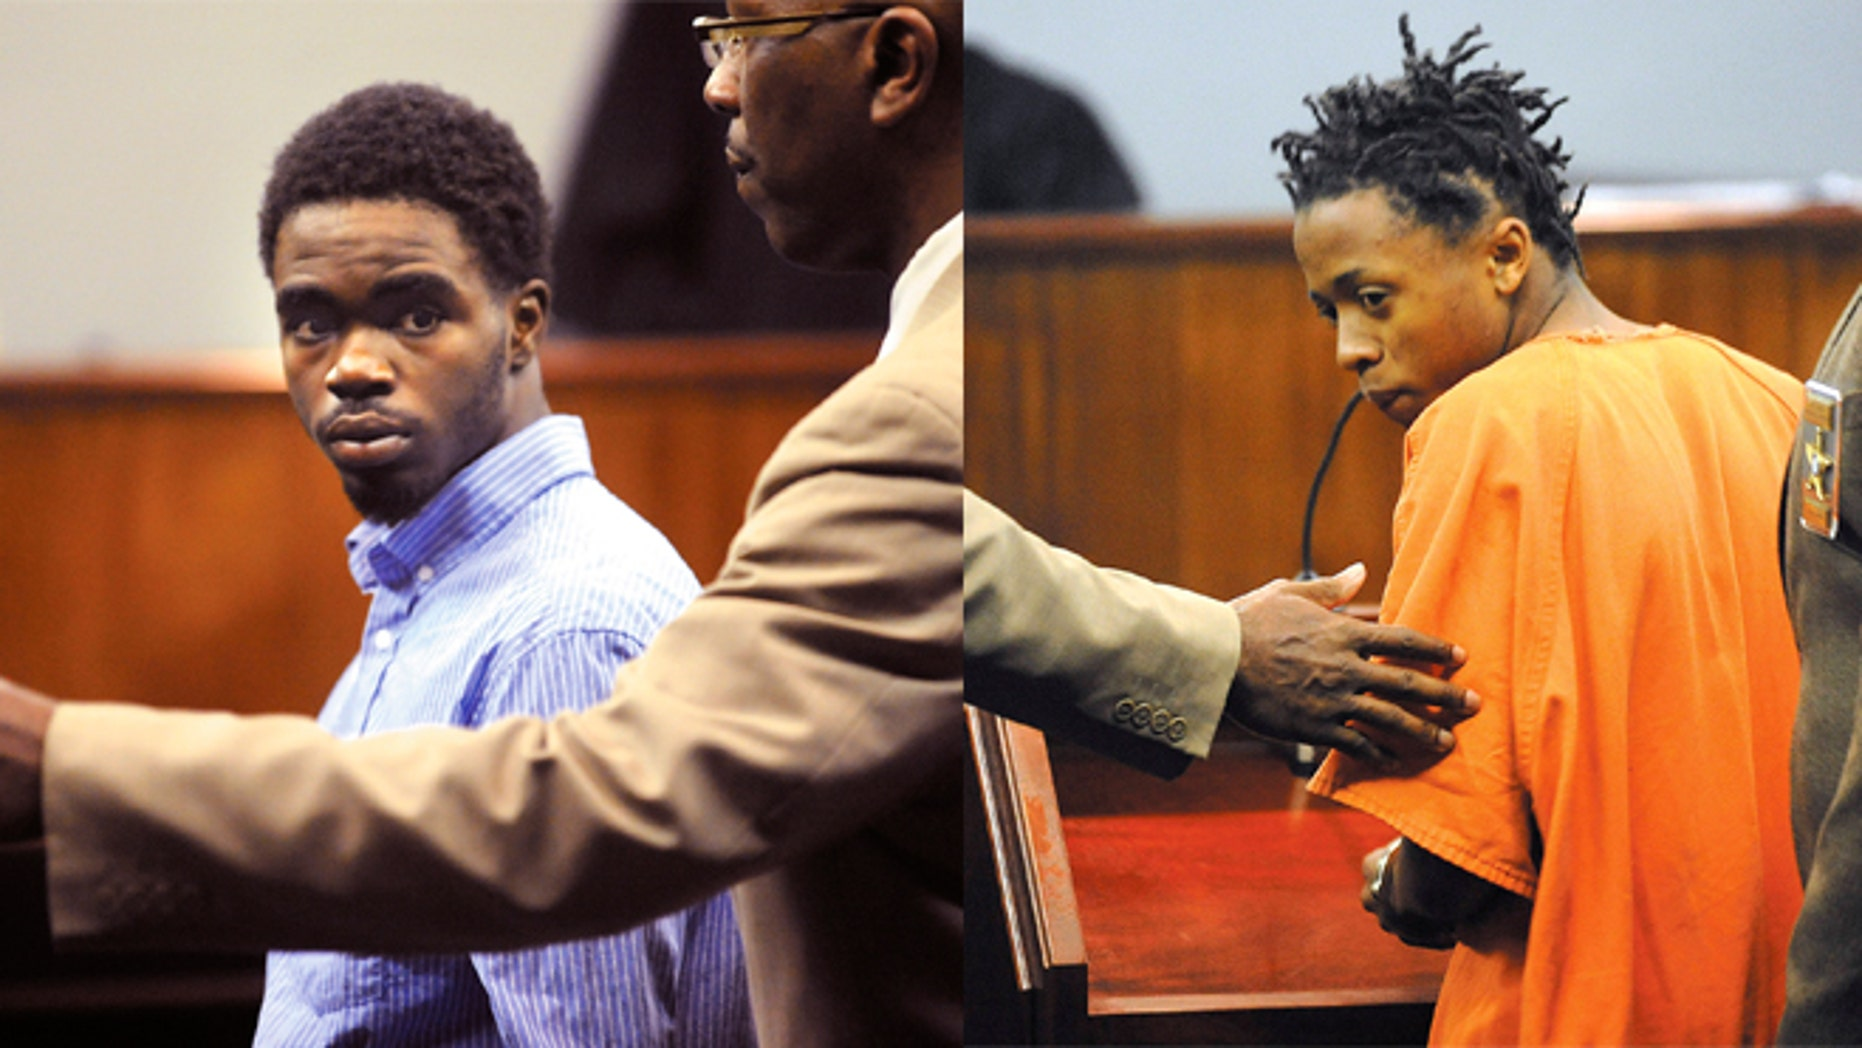 (LEFT) A Glynn County Sheriff's Deputy directs 17 year-old De Marquise Elkins out of the courtroom in the Glynn County Courthouse in Brunswick, Ga. (RIGHT)  A Glynn County Sheriff's Deputy directs 15 year-old Dominique Lang out of the courtroom in the Glynn County Courthouse in Brunswick, Ga.